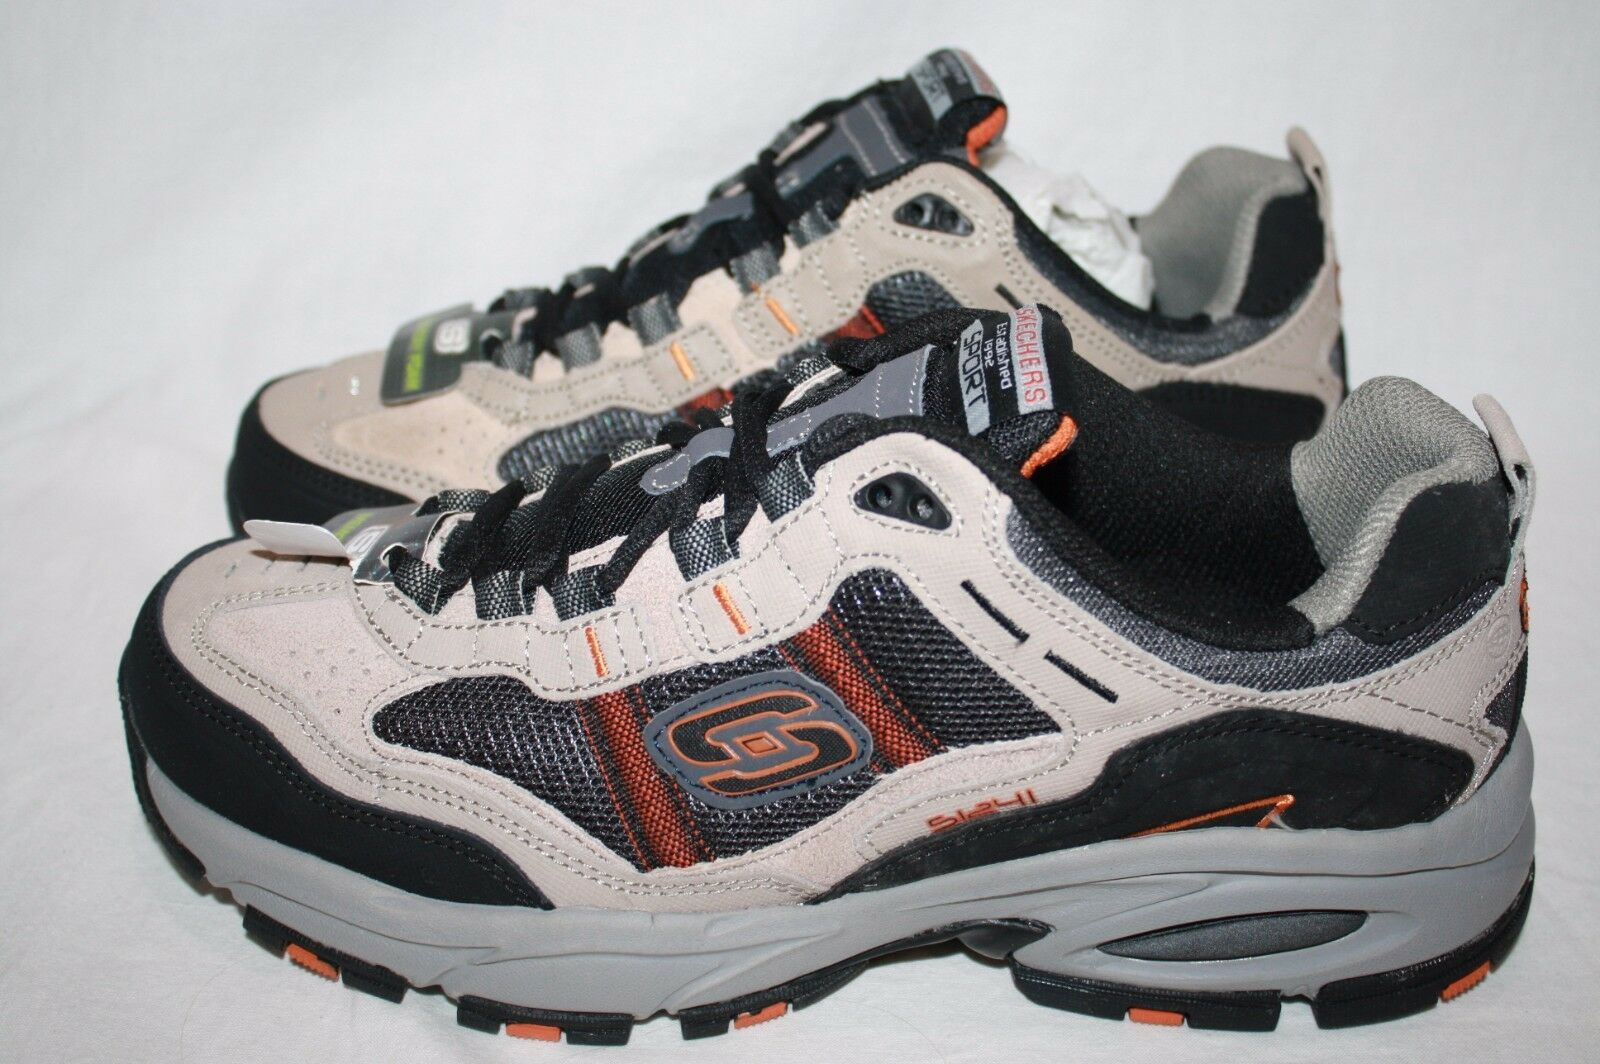 MENS SKECHERS SPORT WITH MEMORY FOAM SHOES - SEE LISTING FOR SIZE (2311)